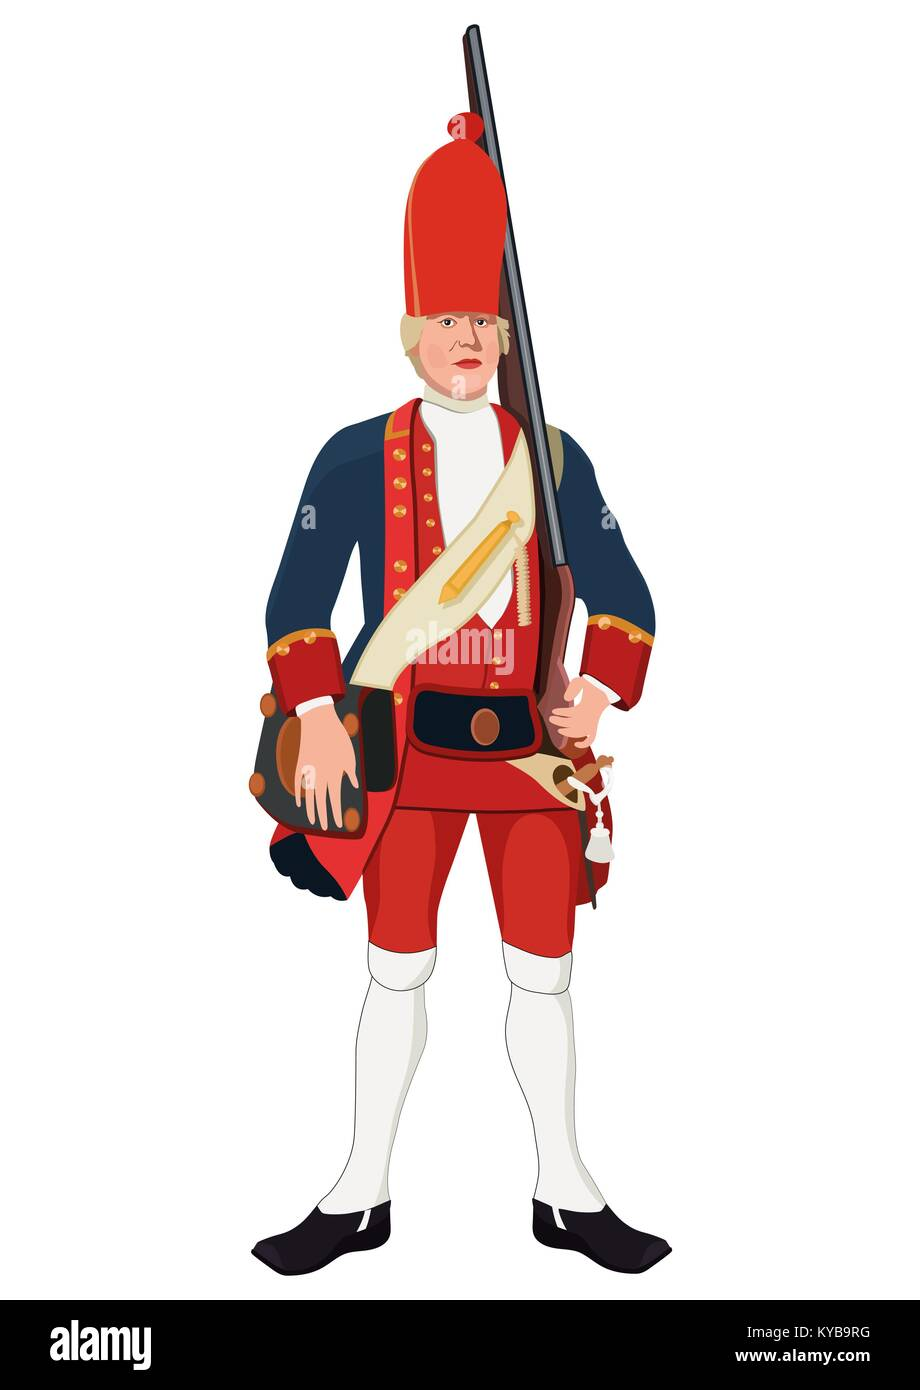 Grenadier, vector drawing. Soldier dressed in military old uniform with a gun on his shoulder, painted portrait. - Stock Vector